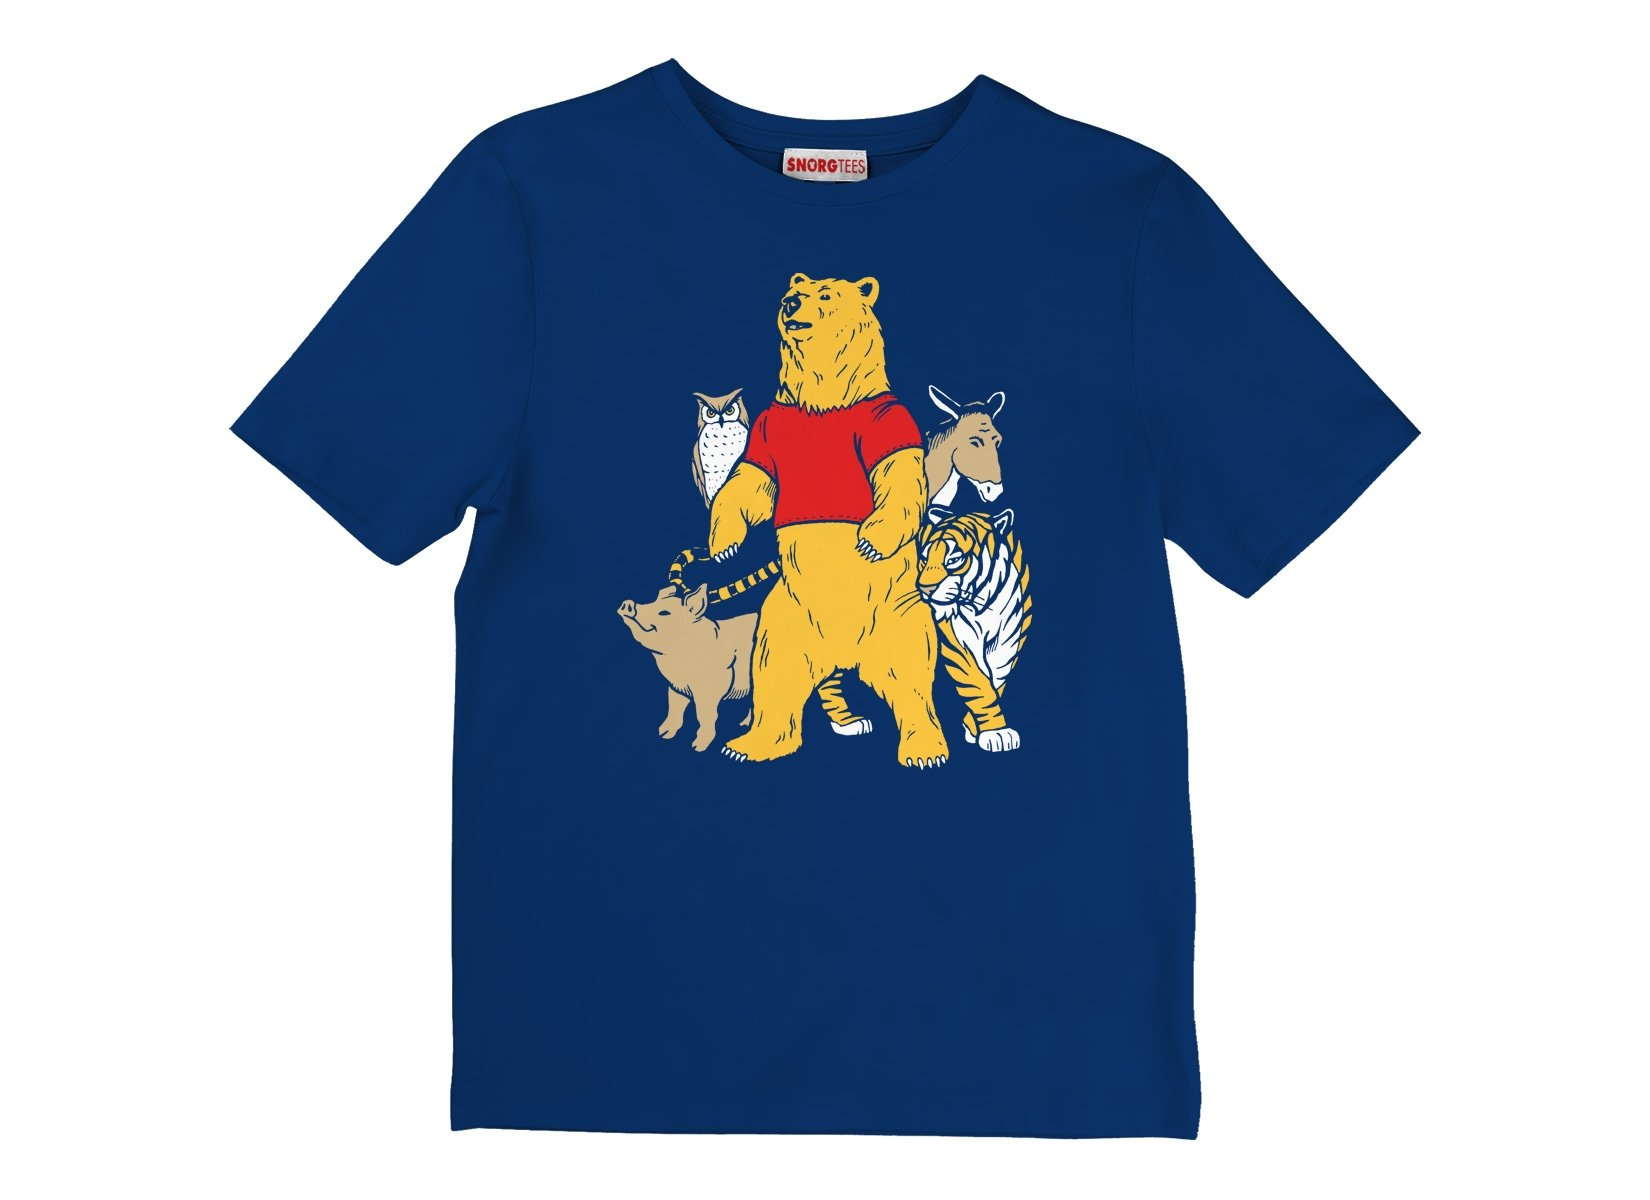 Bear And Friends on Kids T-Shirt